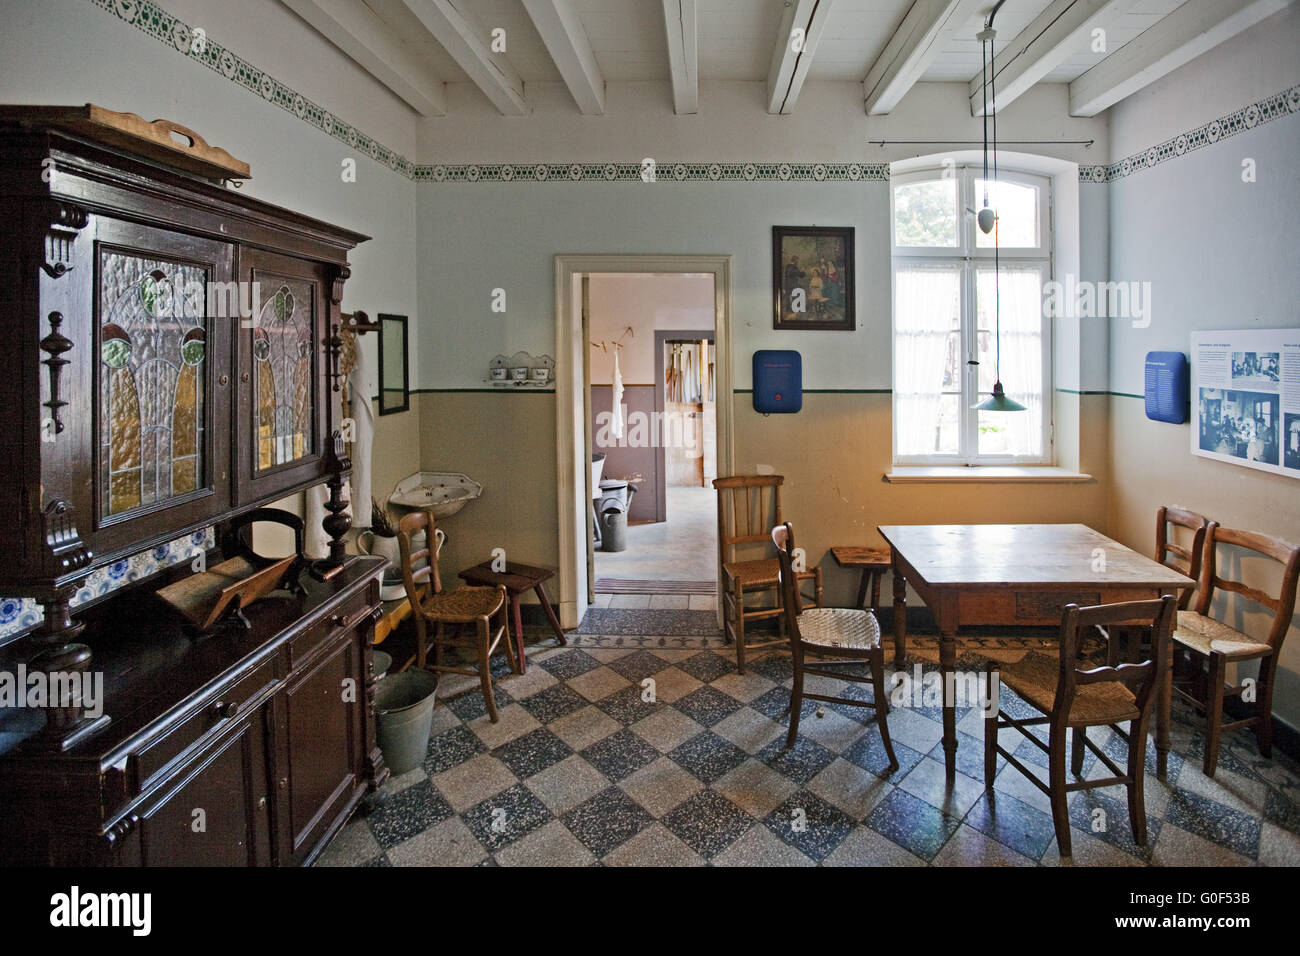 Kitchen Of A Workeru0027s Apartment In 1920 In The Textile Museum Bocholt,  Muensterland, Germany